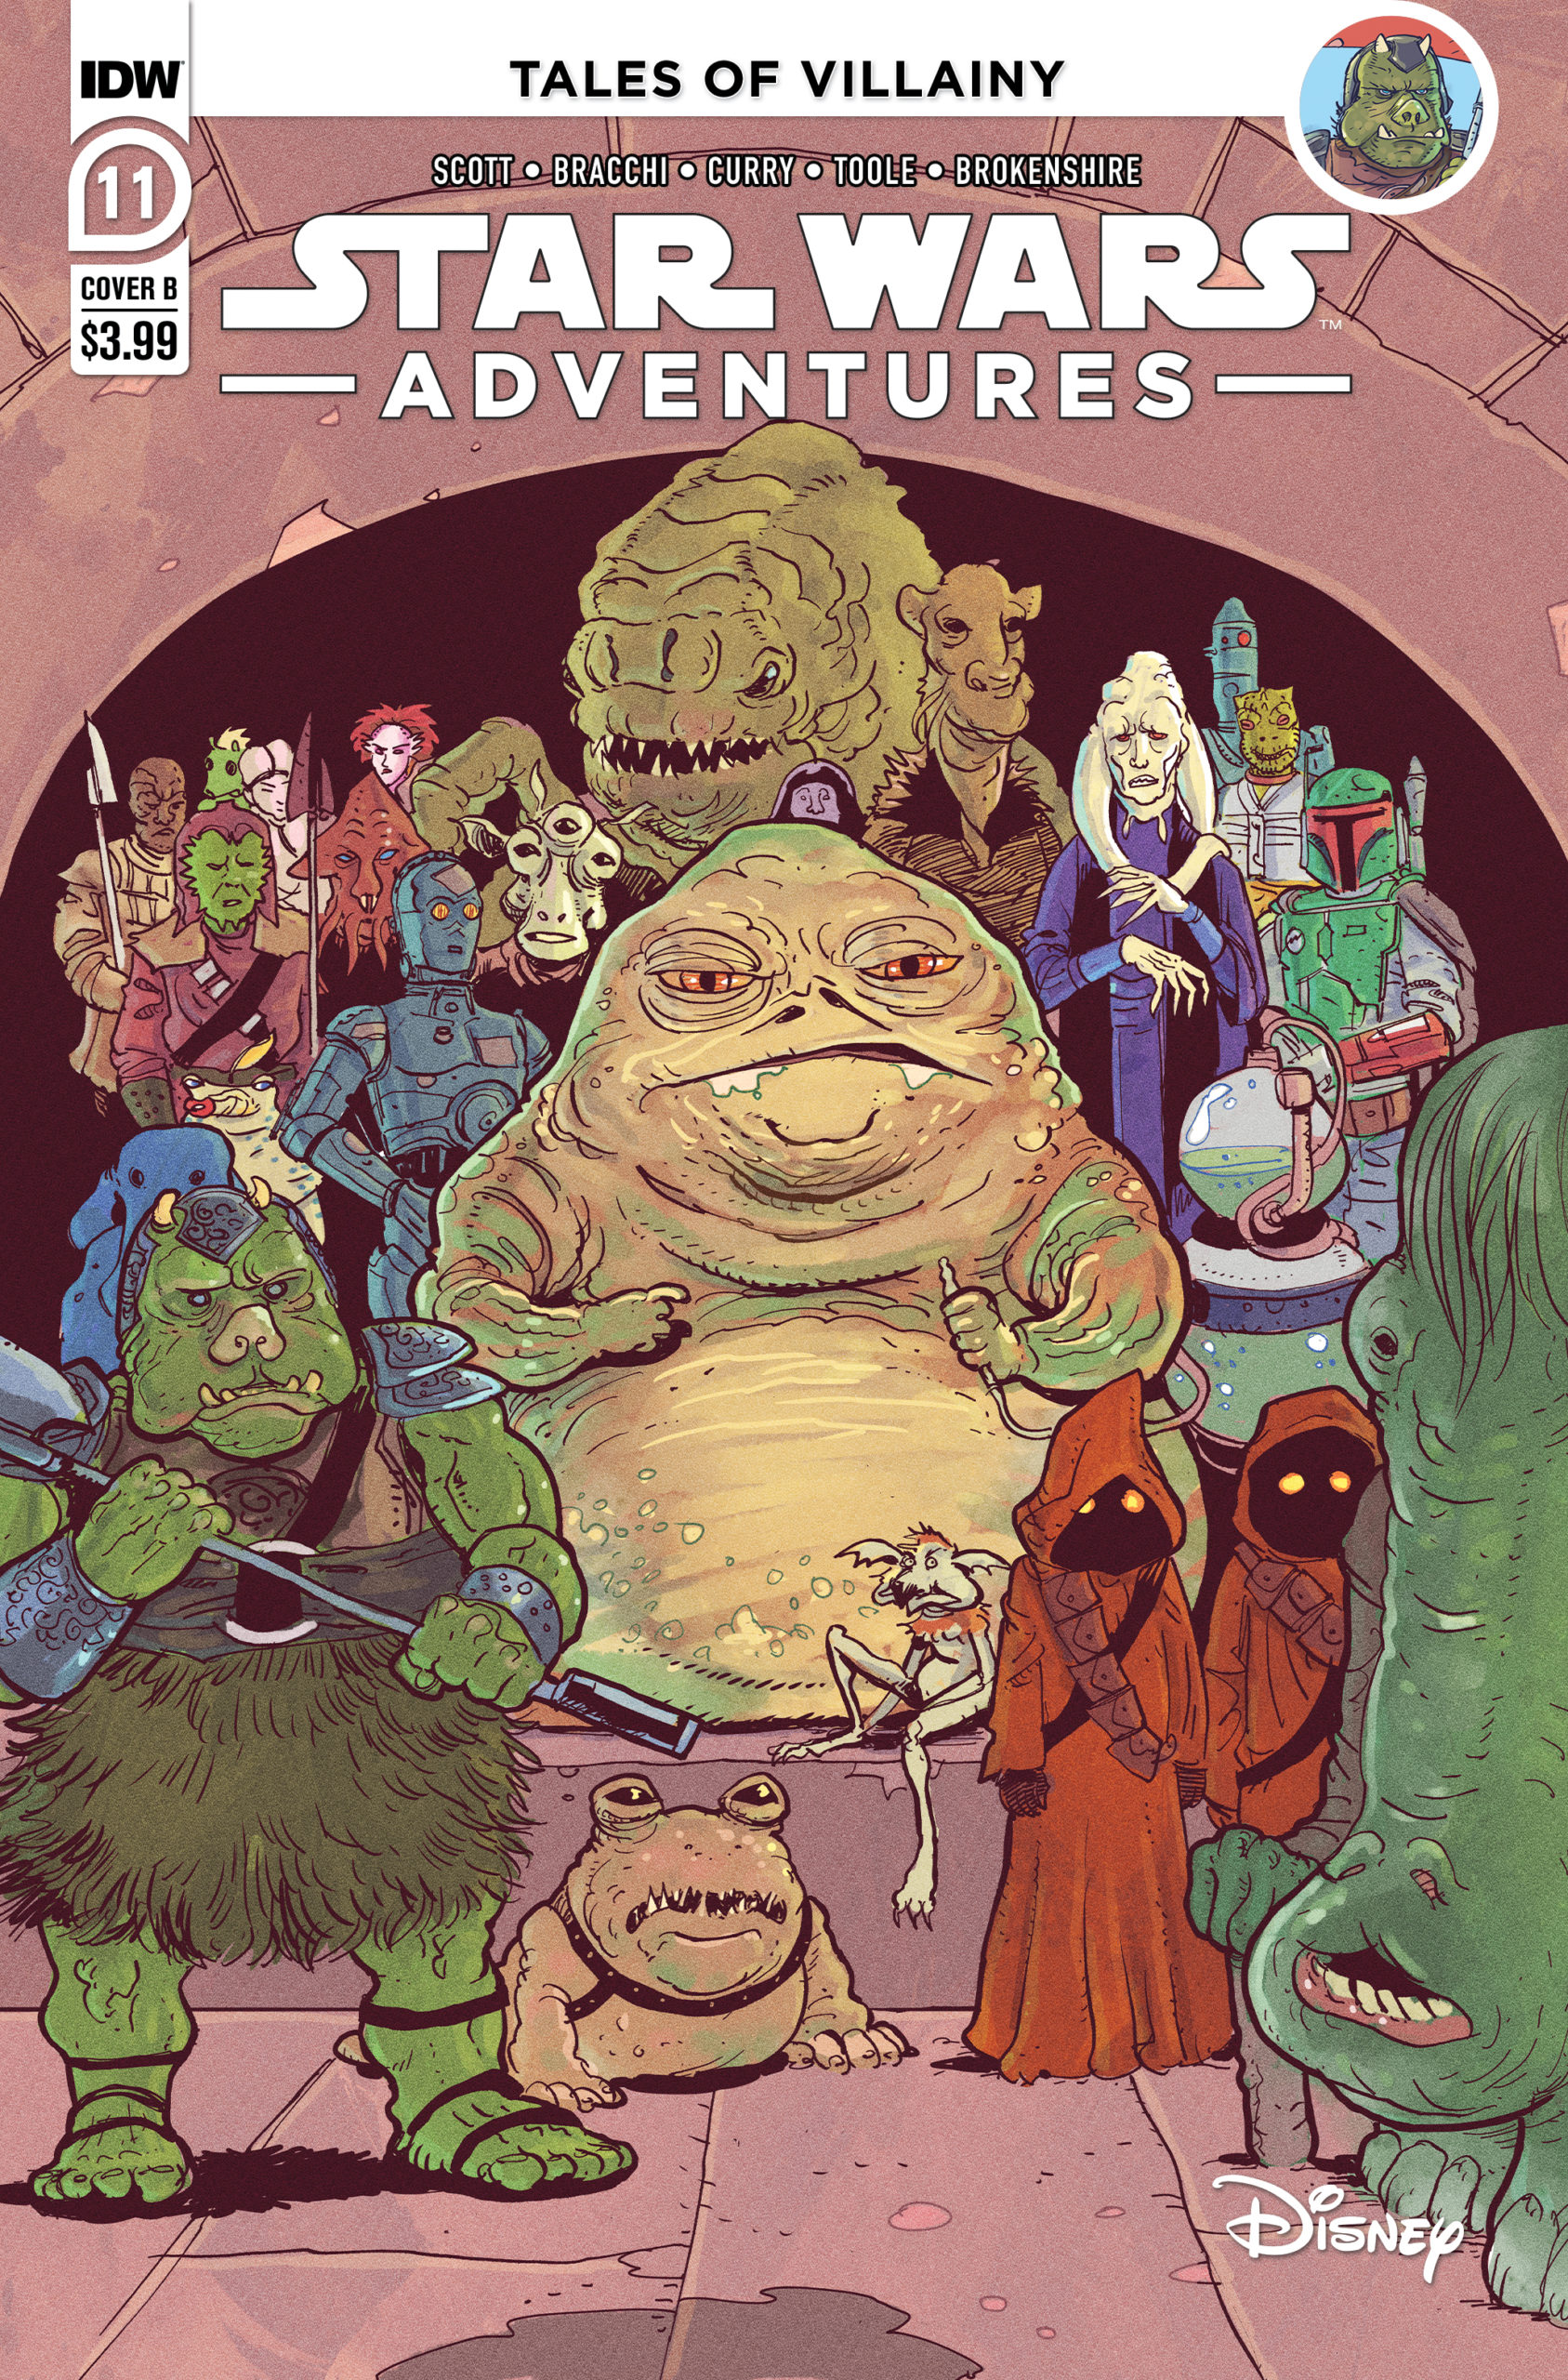 Star Wars Adventures #11 Cover B